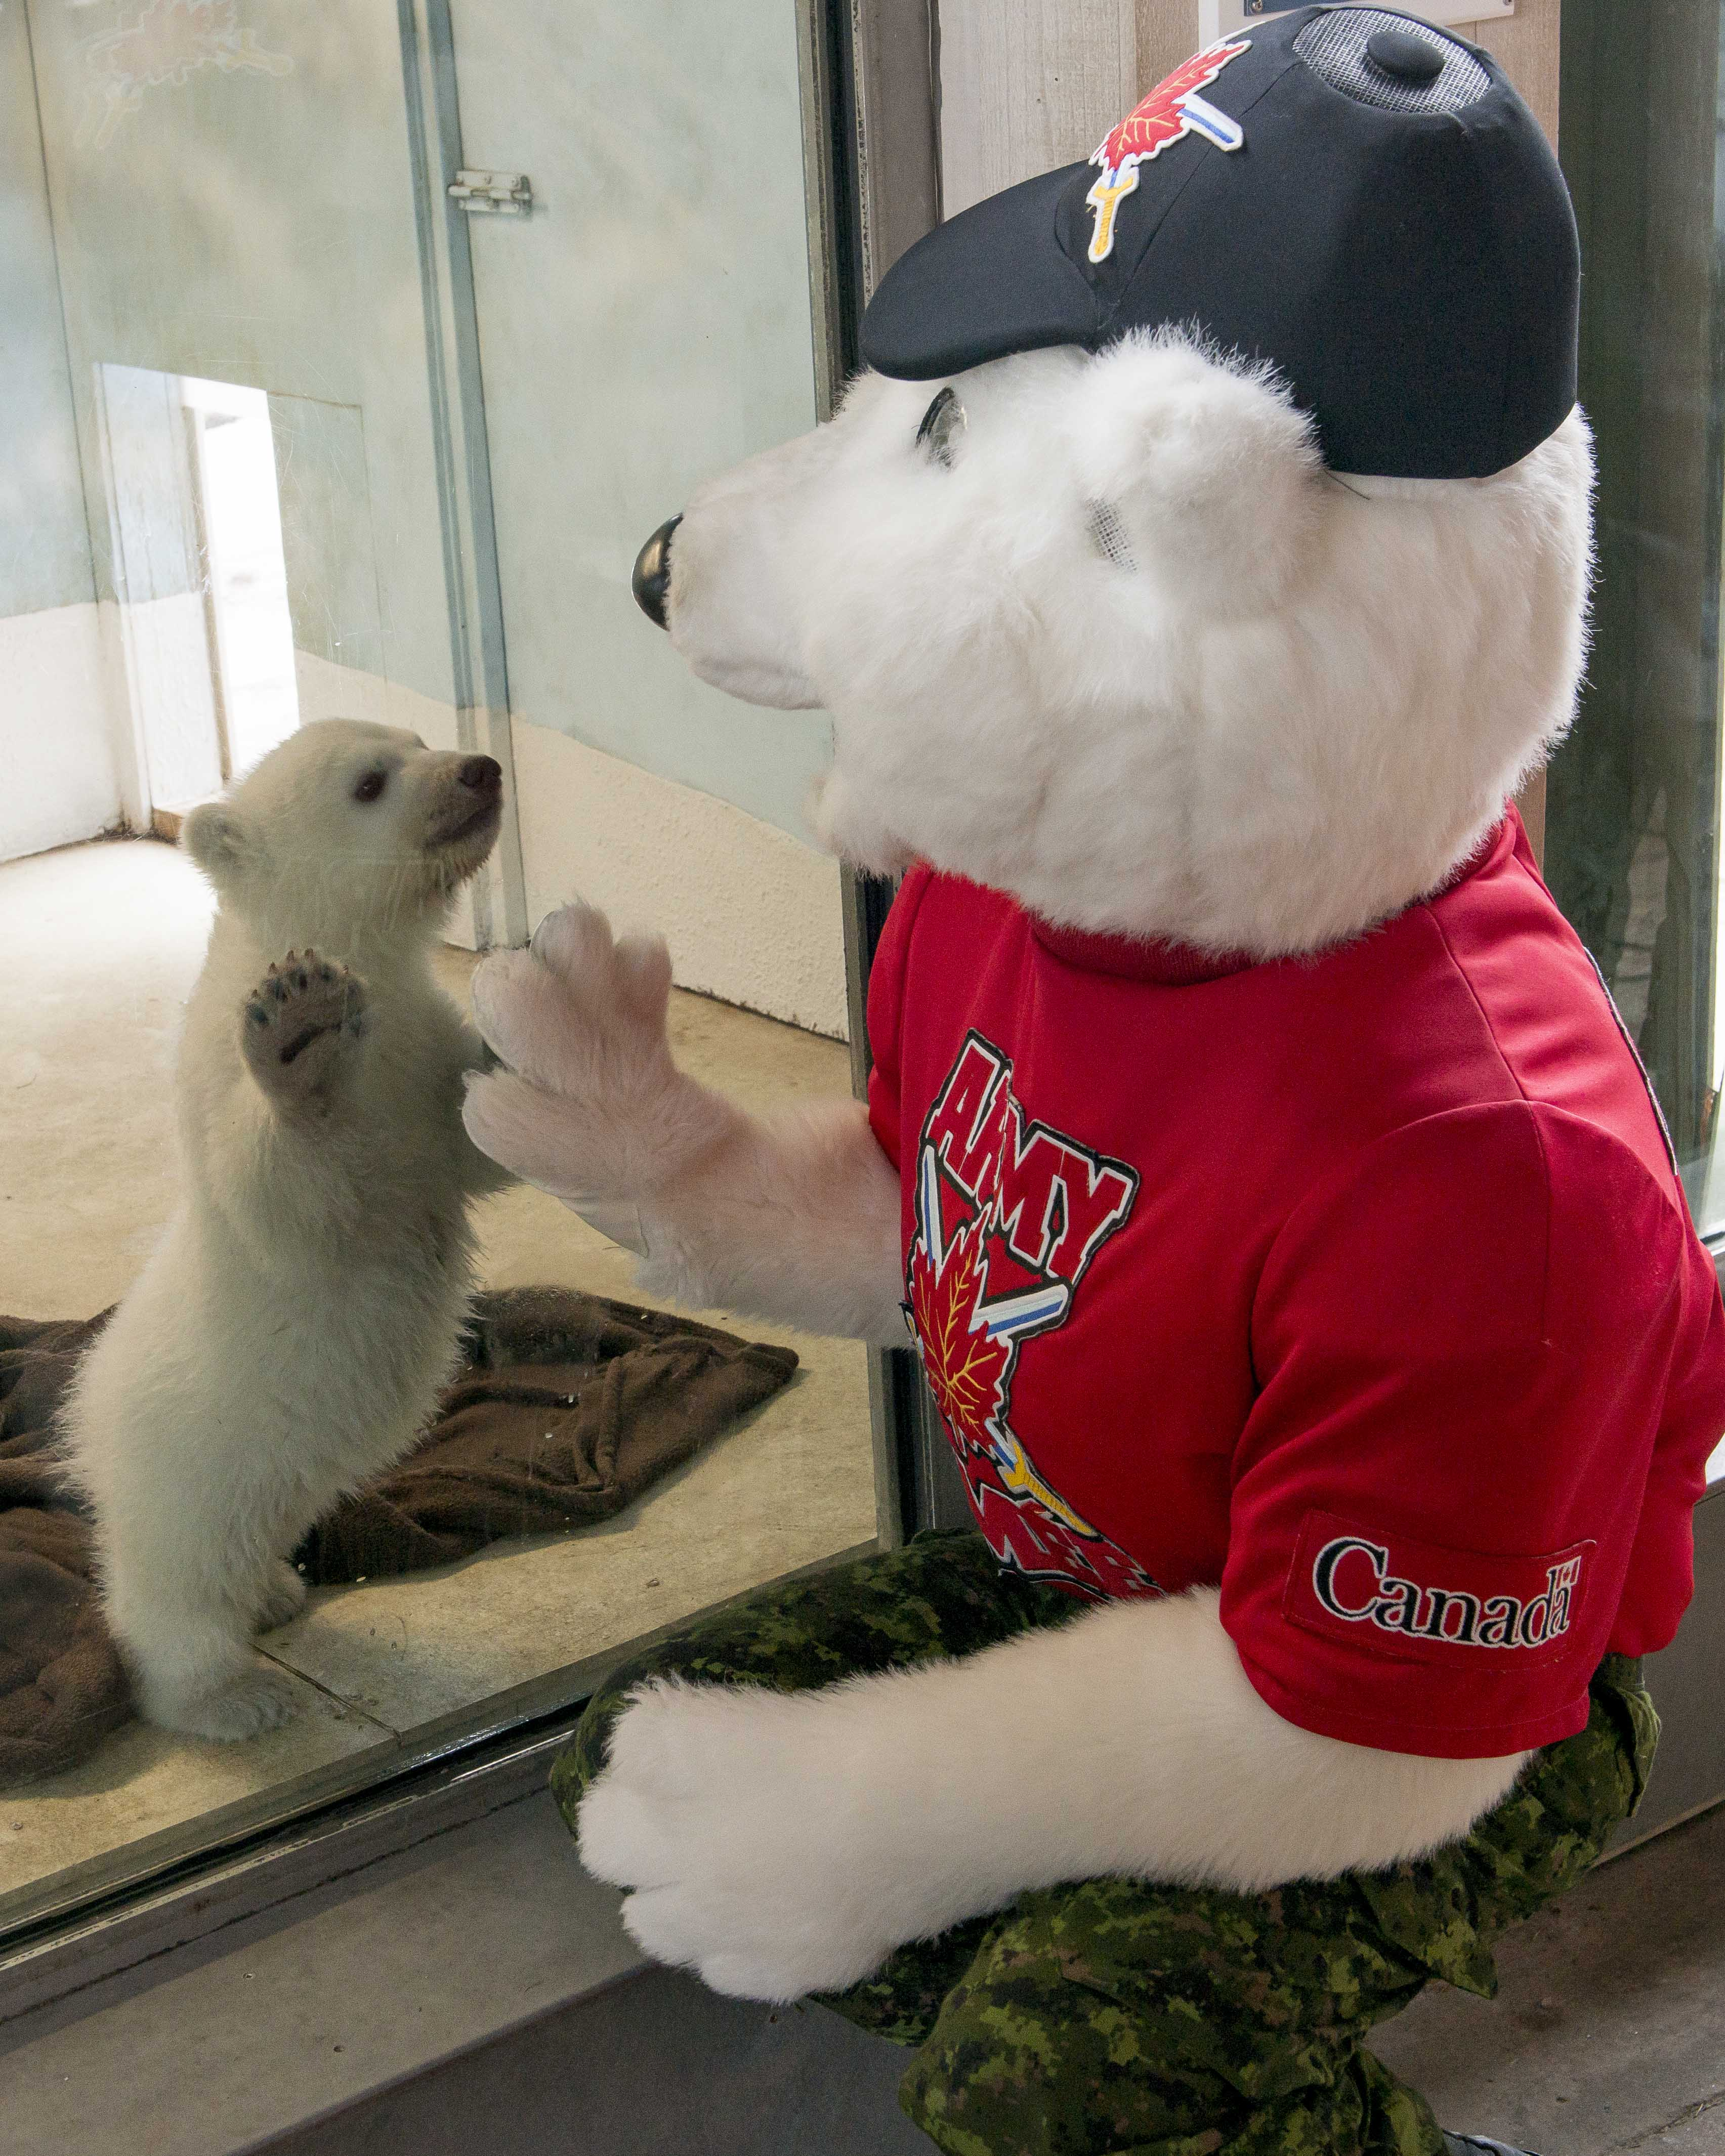 Canadian Army mascot Juno says hello to a newly adopted polar bear cub.